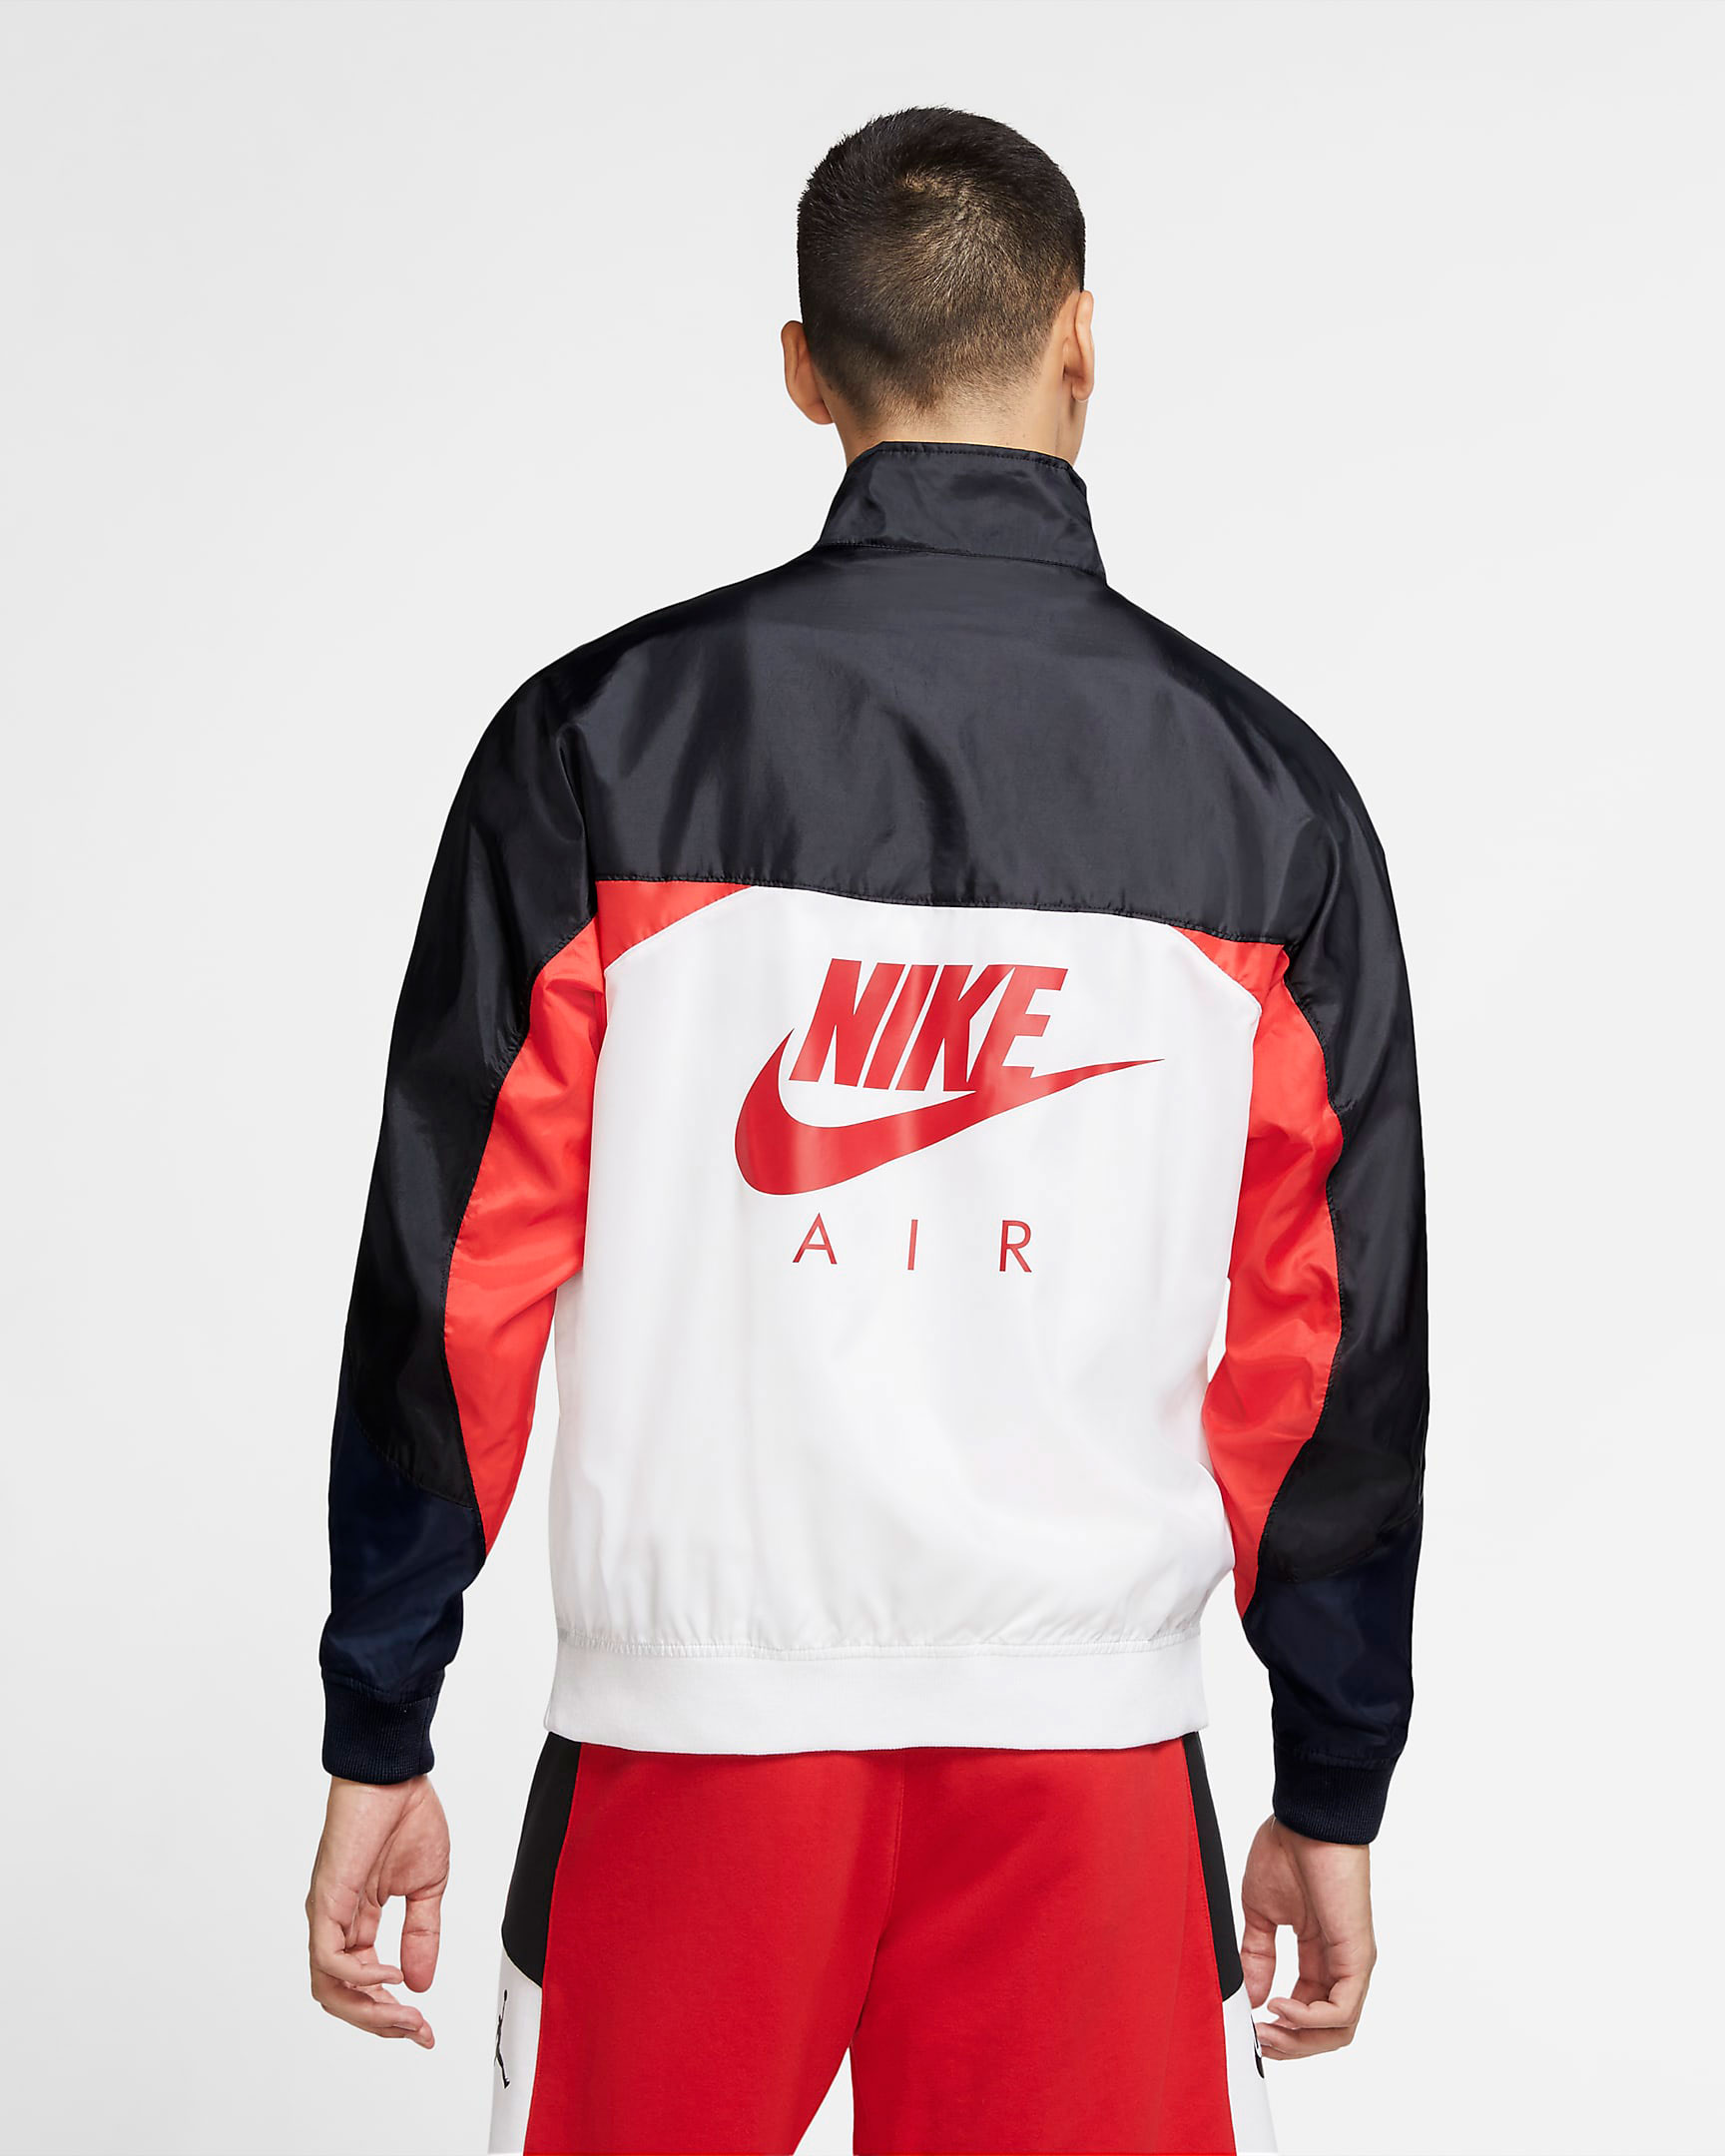 air-jordan-35-warrior-jacket-match-2